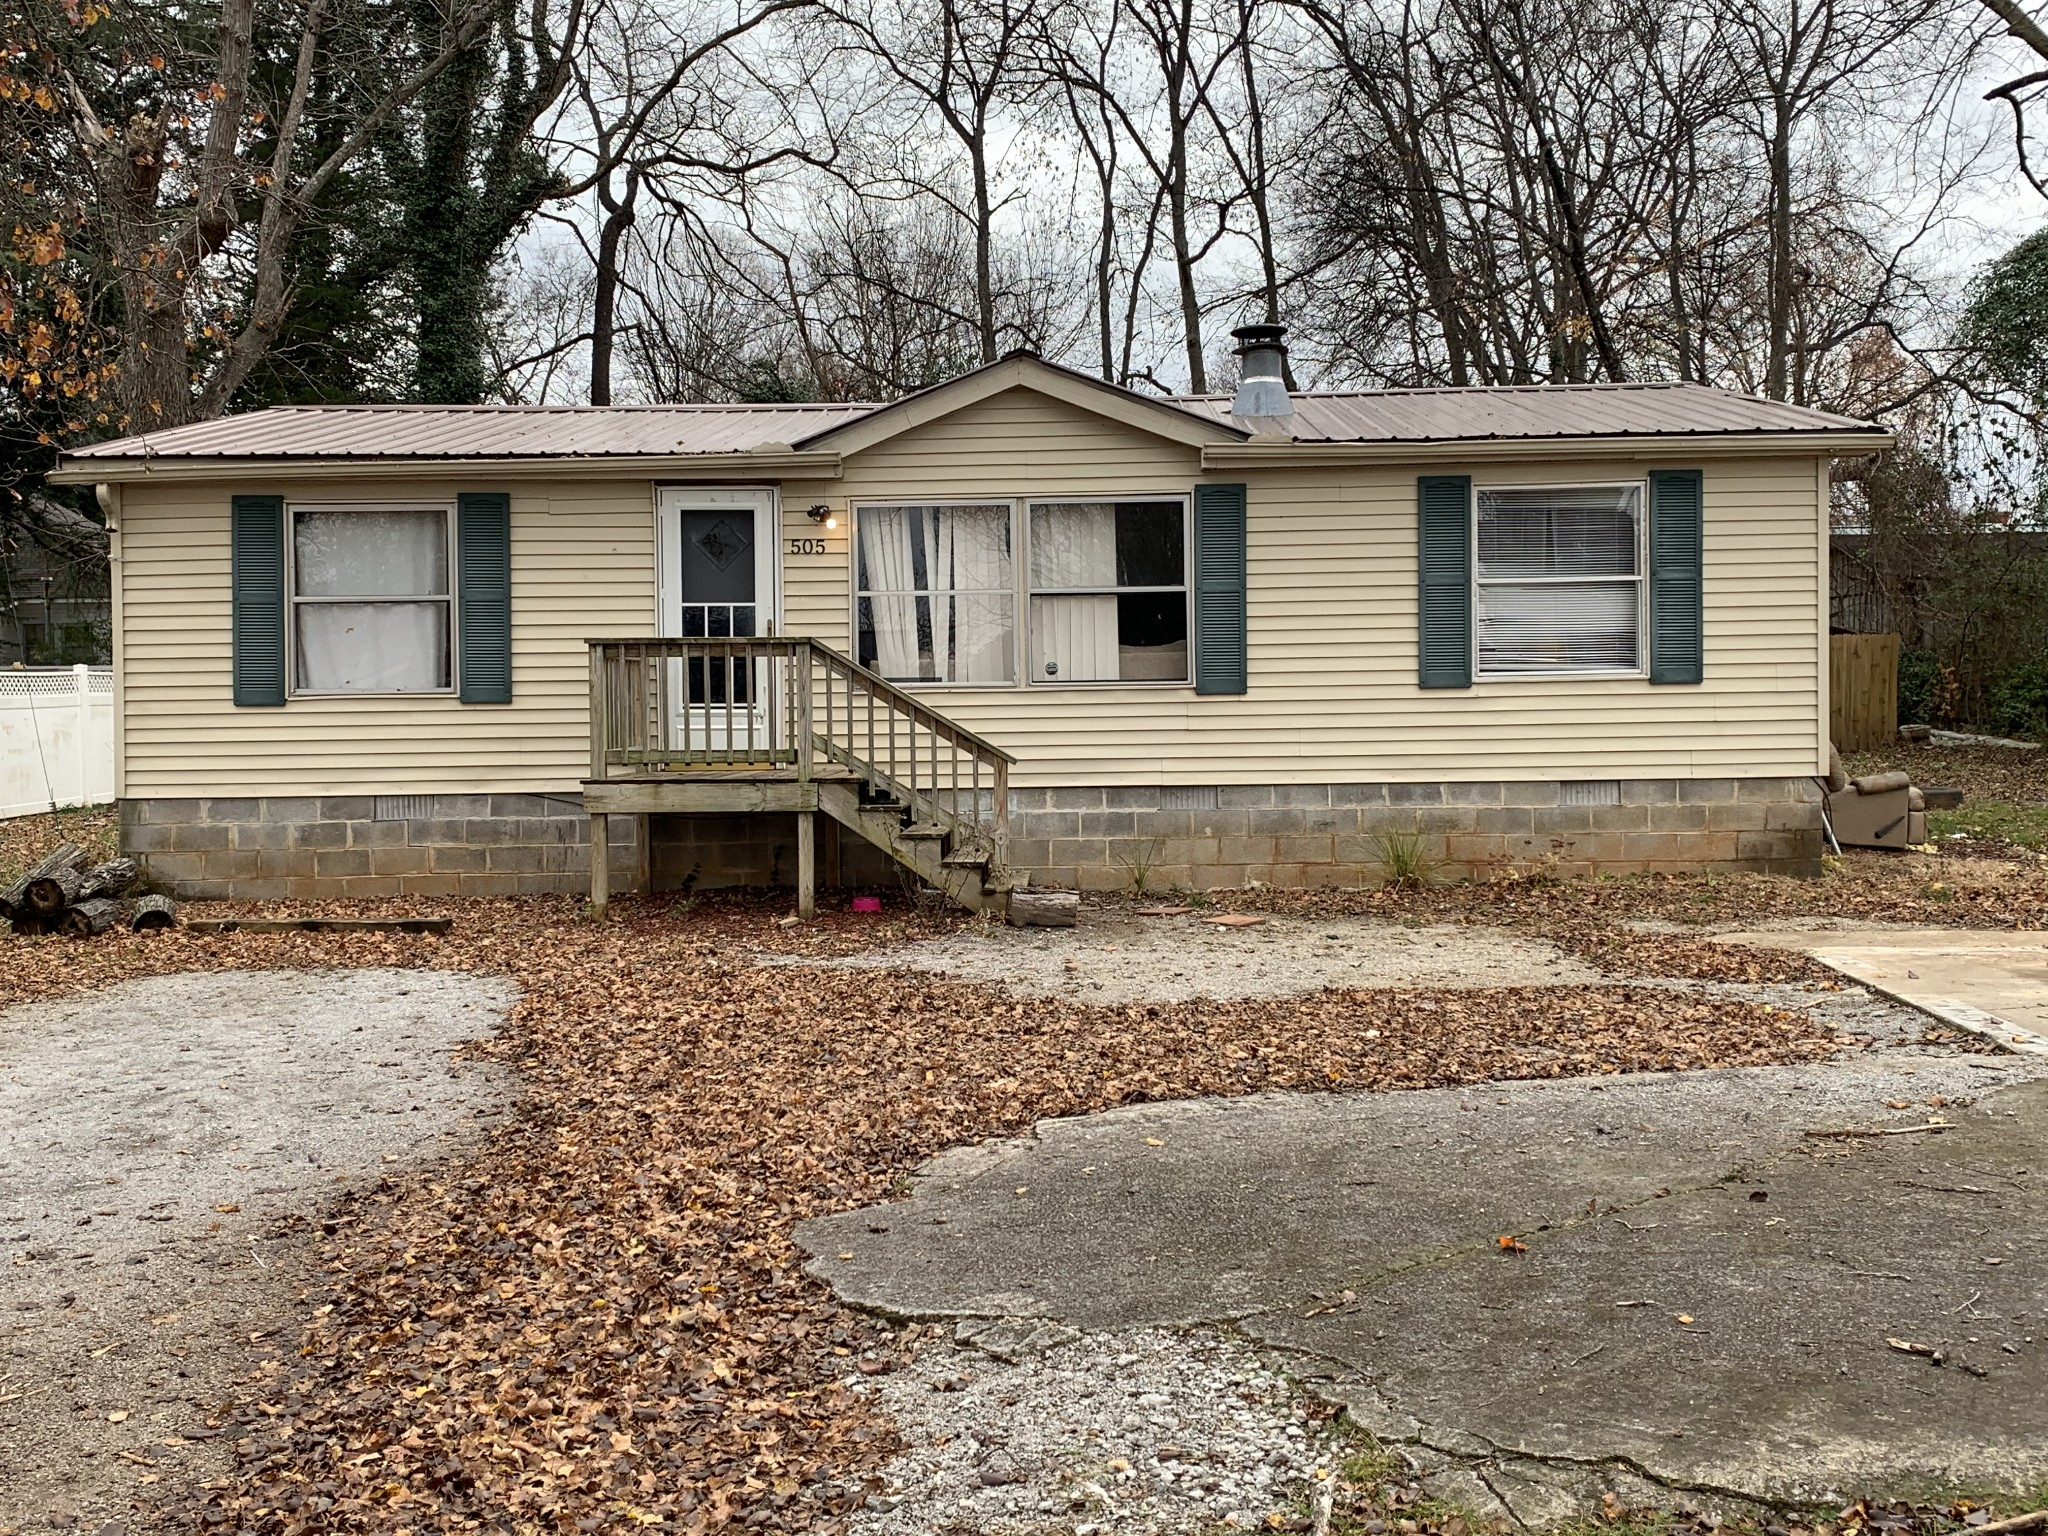 505 S Vine St Property Photo - Winchester, TN real estate listing